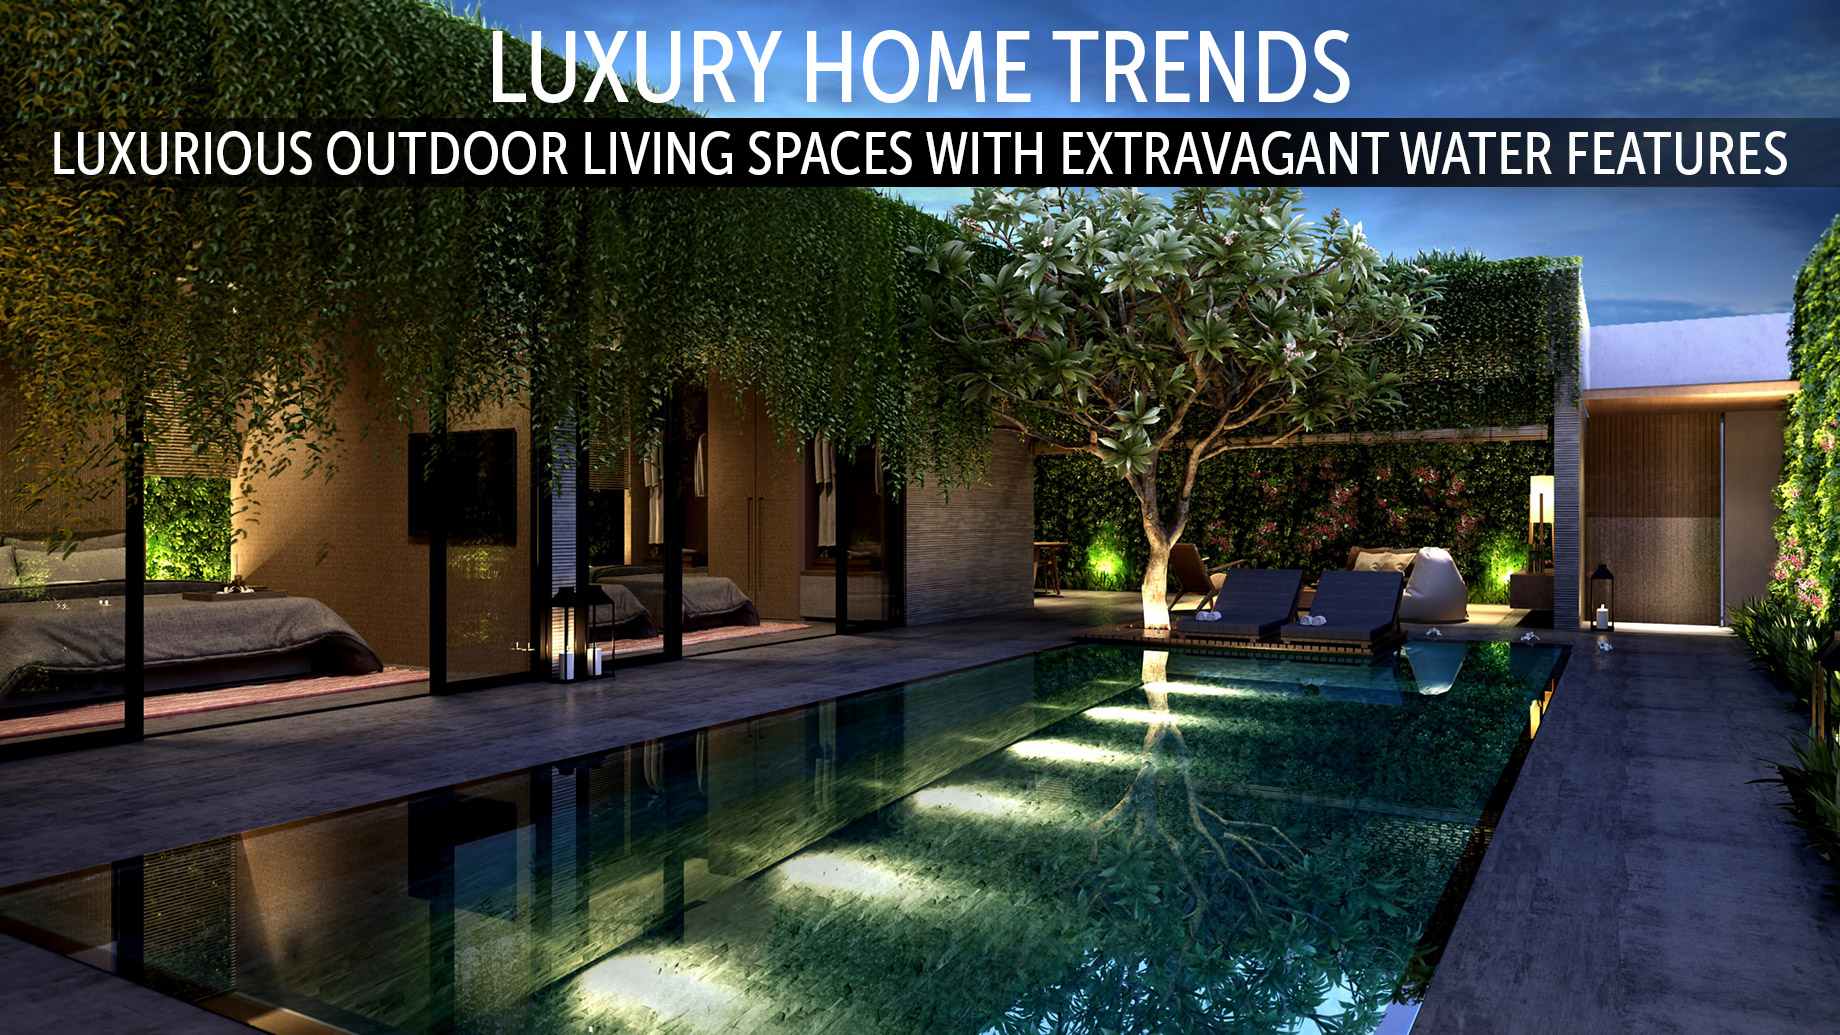 Luxury Home Trends - Luxurious Outdoor Living Spaces with Extravagant Water Features